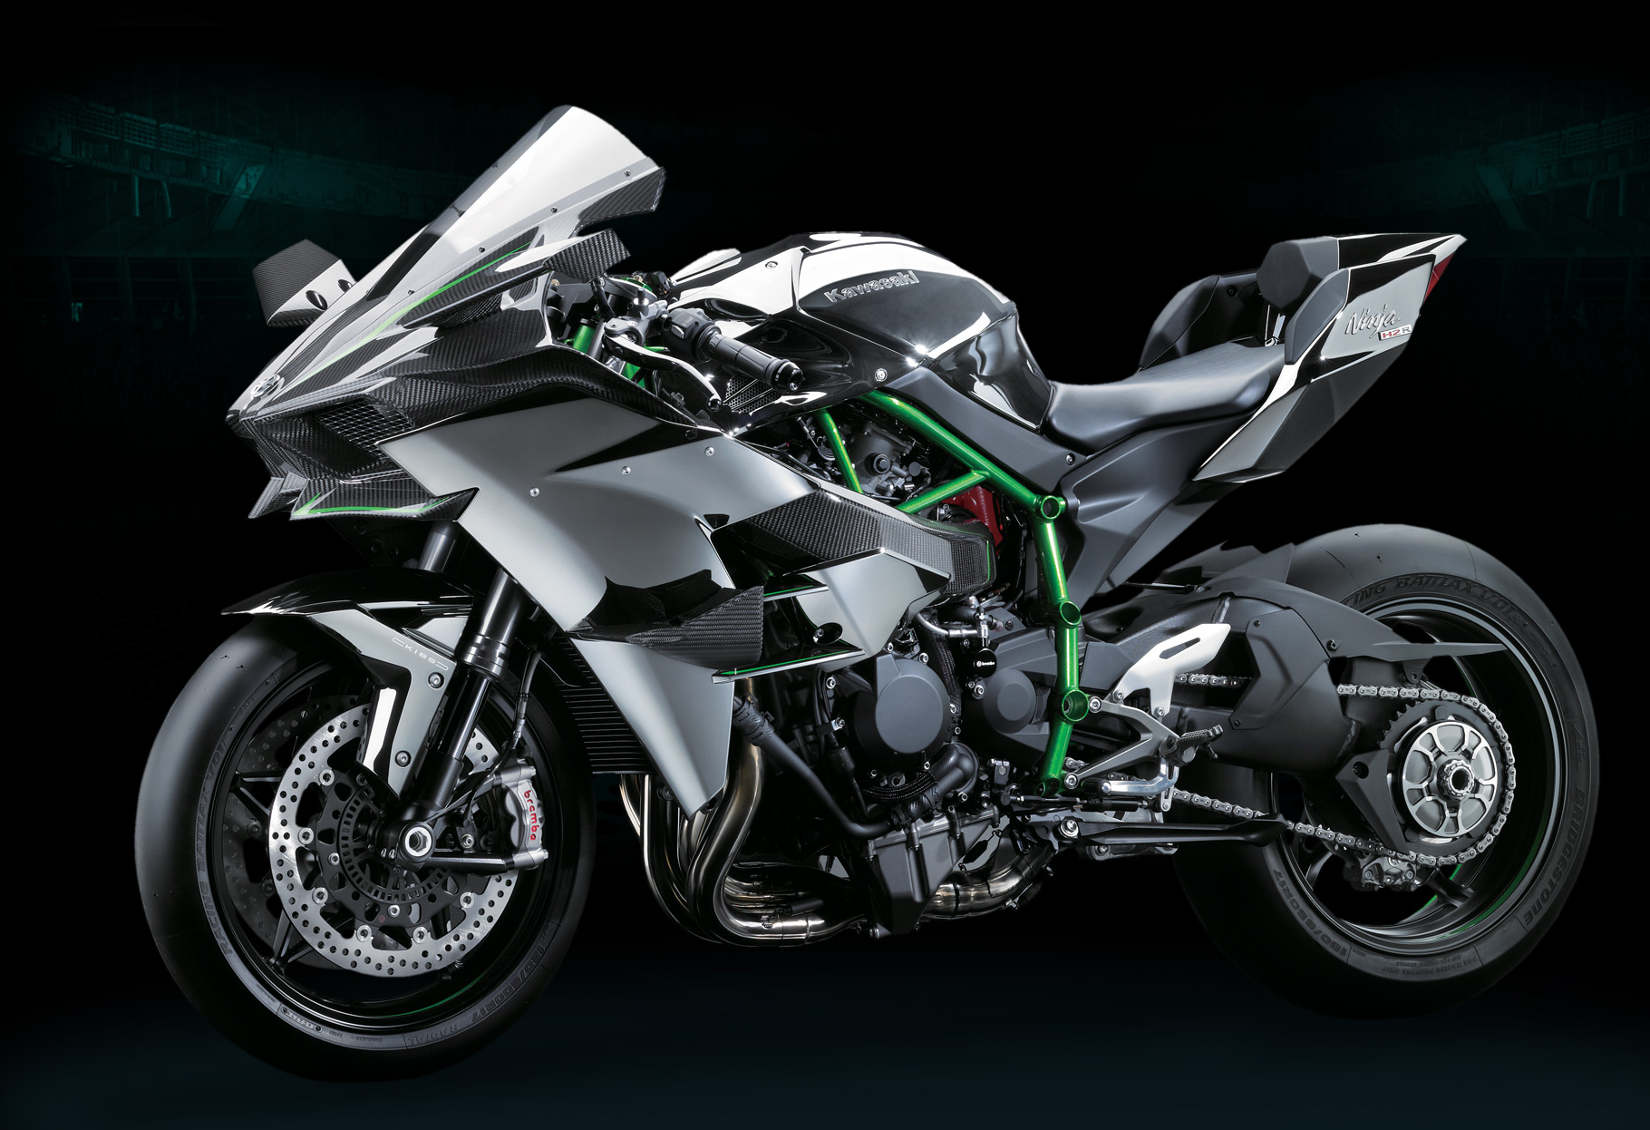 kawasaki debuts 300 hp closed course h2r street legal model debuts soon. Black Bedroom Furniture Sets. Home Design Ideas